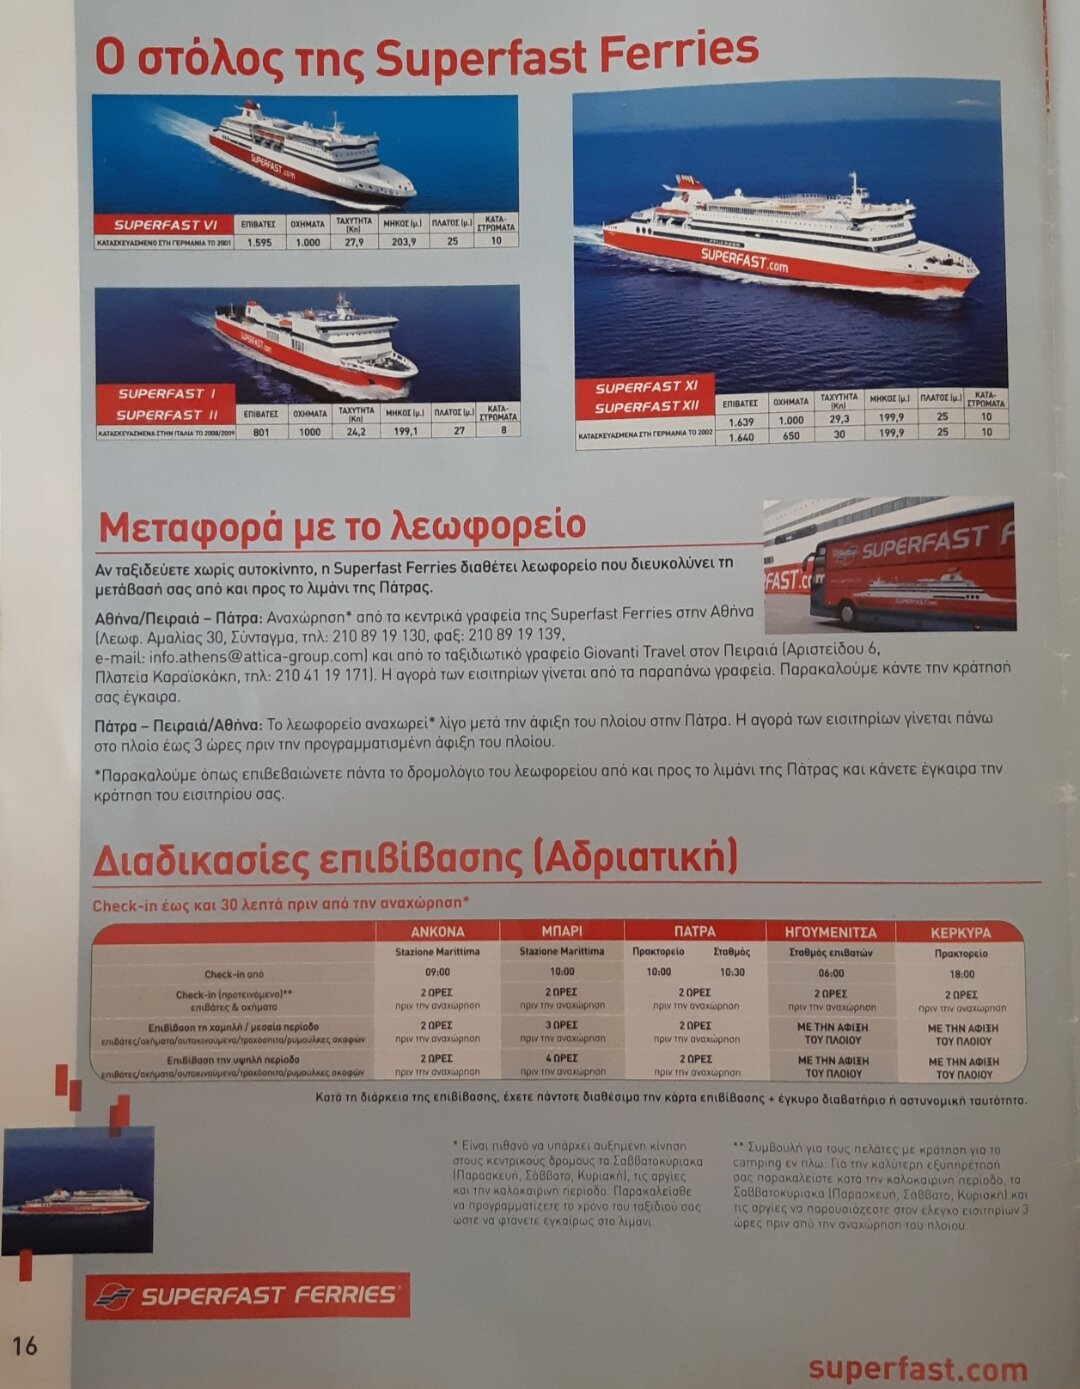 Superfast ferries brochure 2011